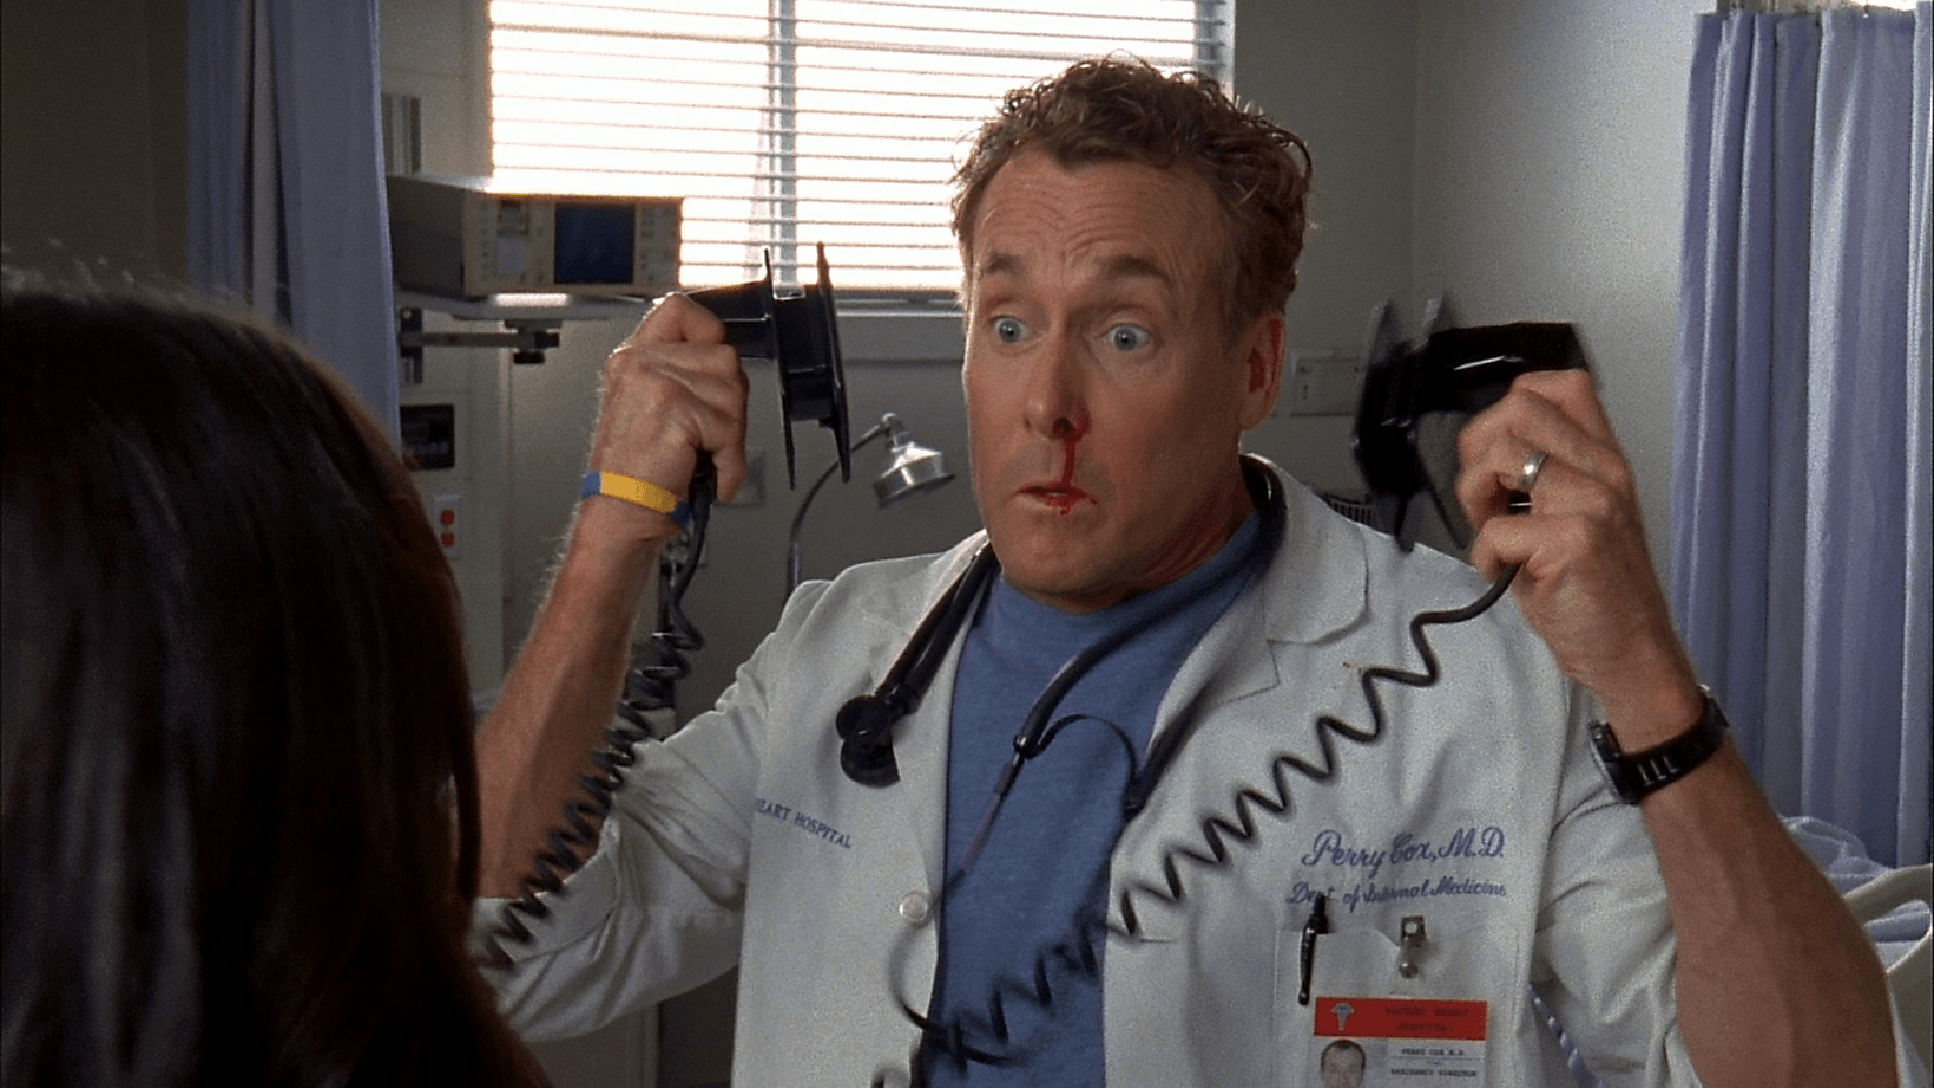 Dr. Cox holding defibrillators on Scrubs